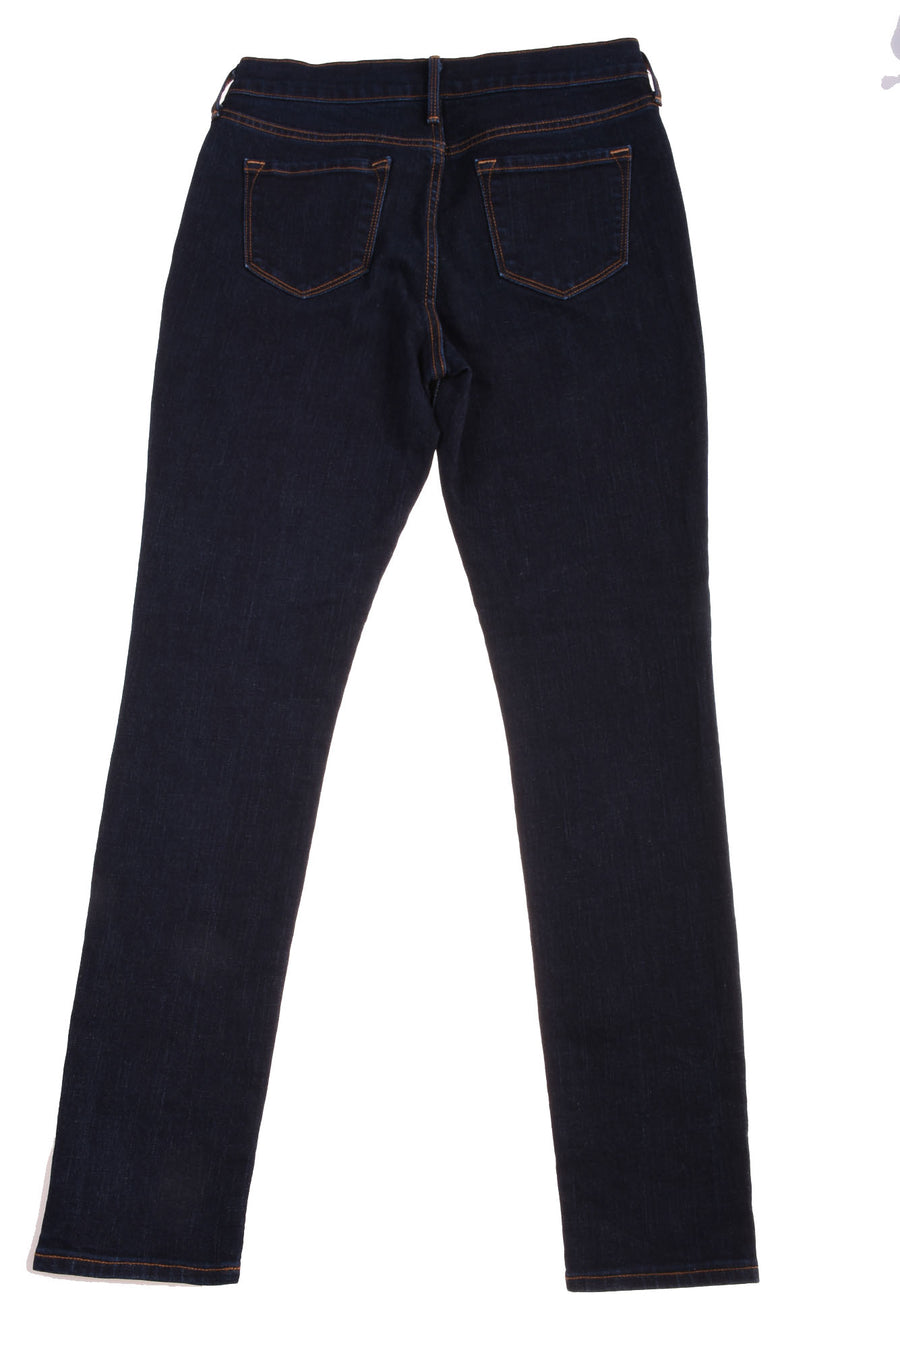 Women's Jeans By Old Navy